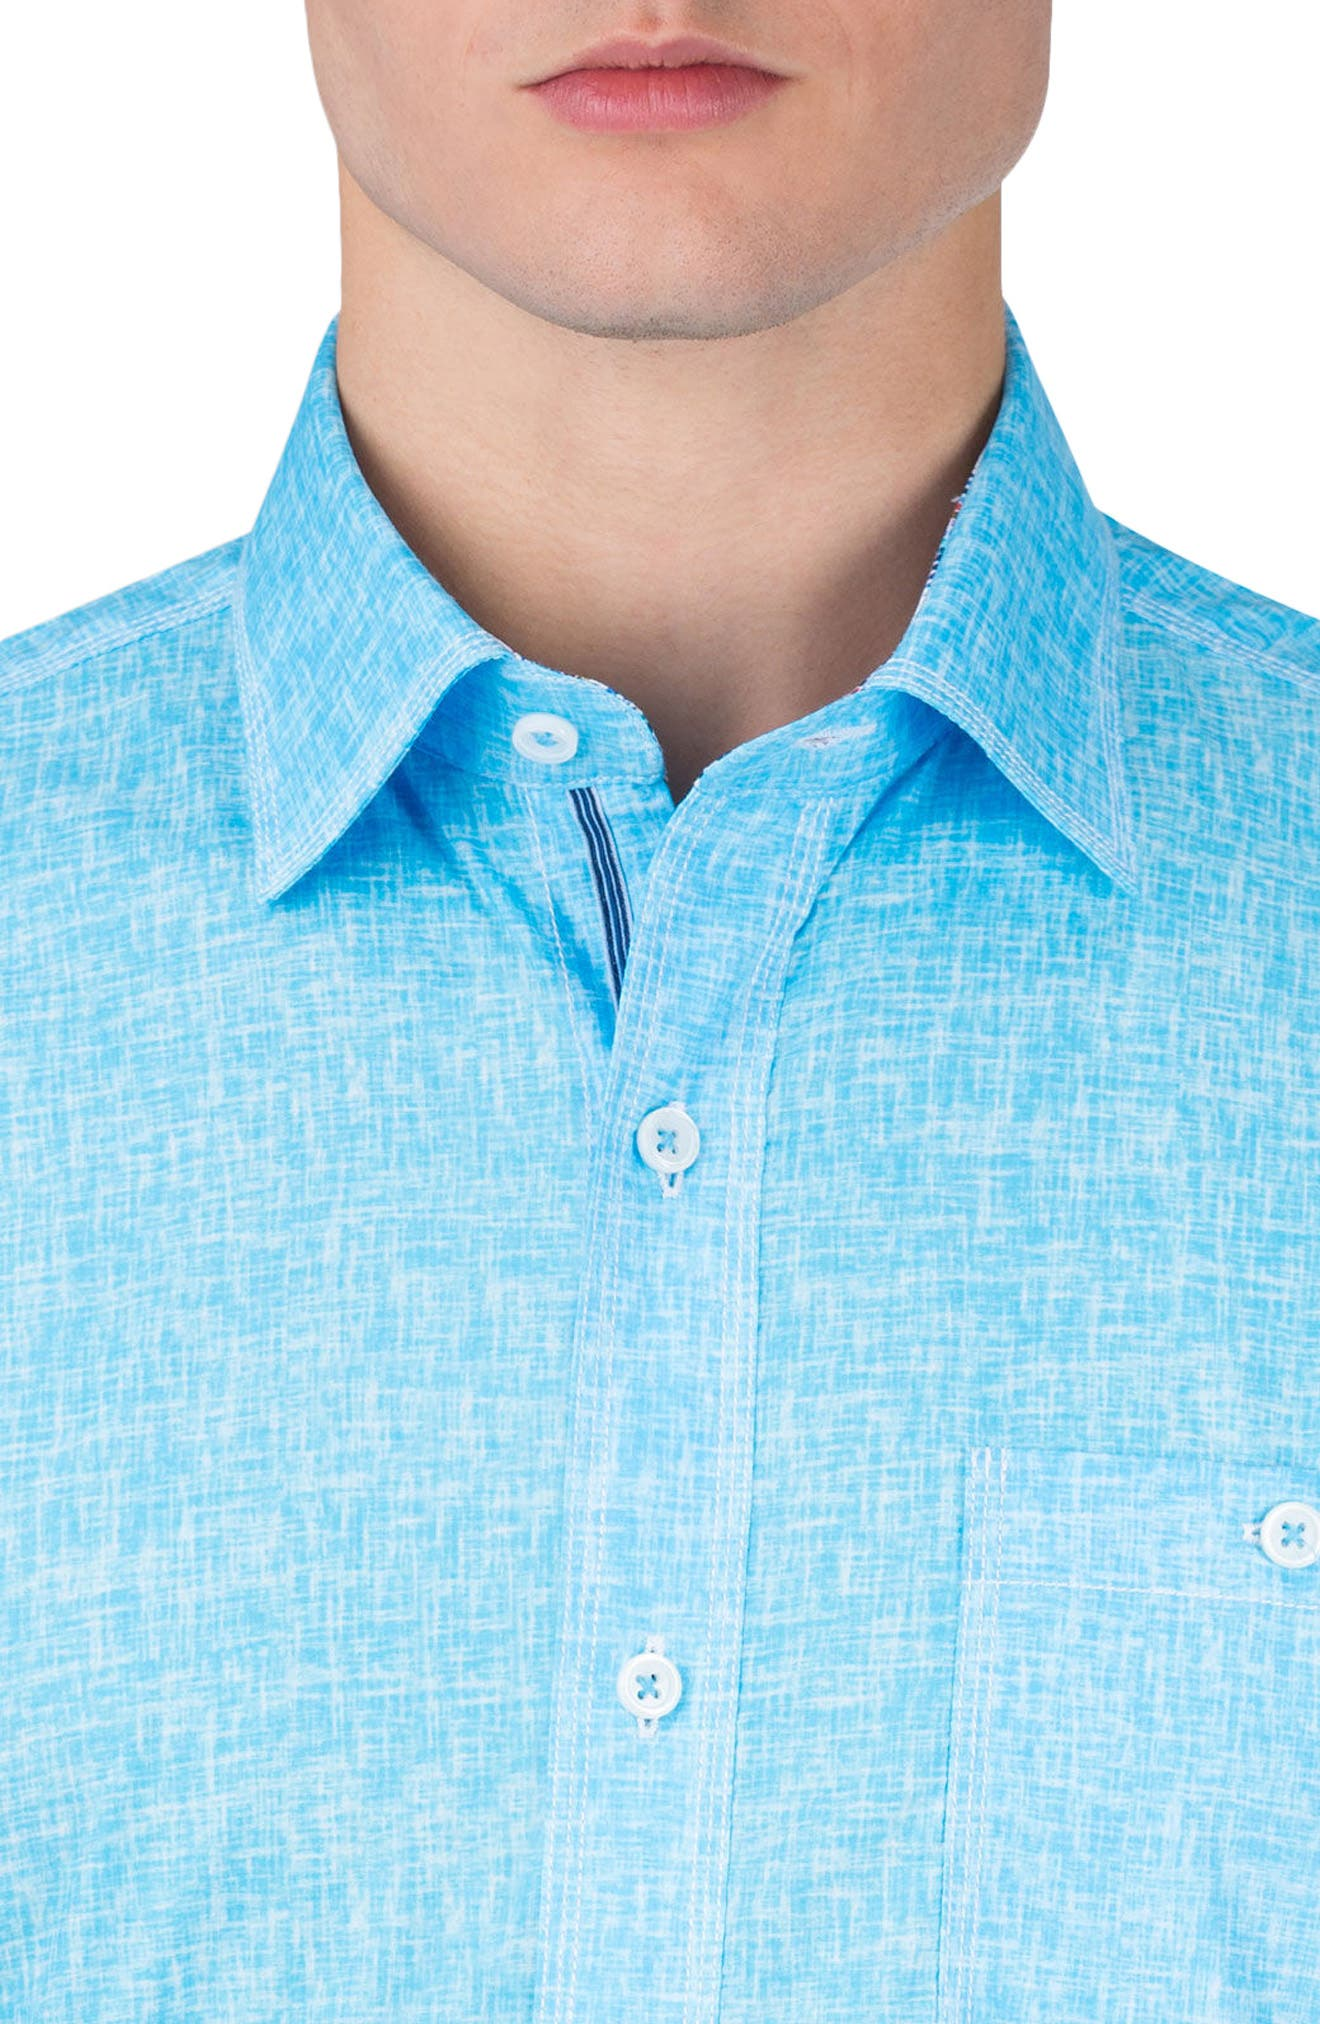 Classic Fit Solid Sport Shirt,                             Alternate thumbnail 3, color,                             451